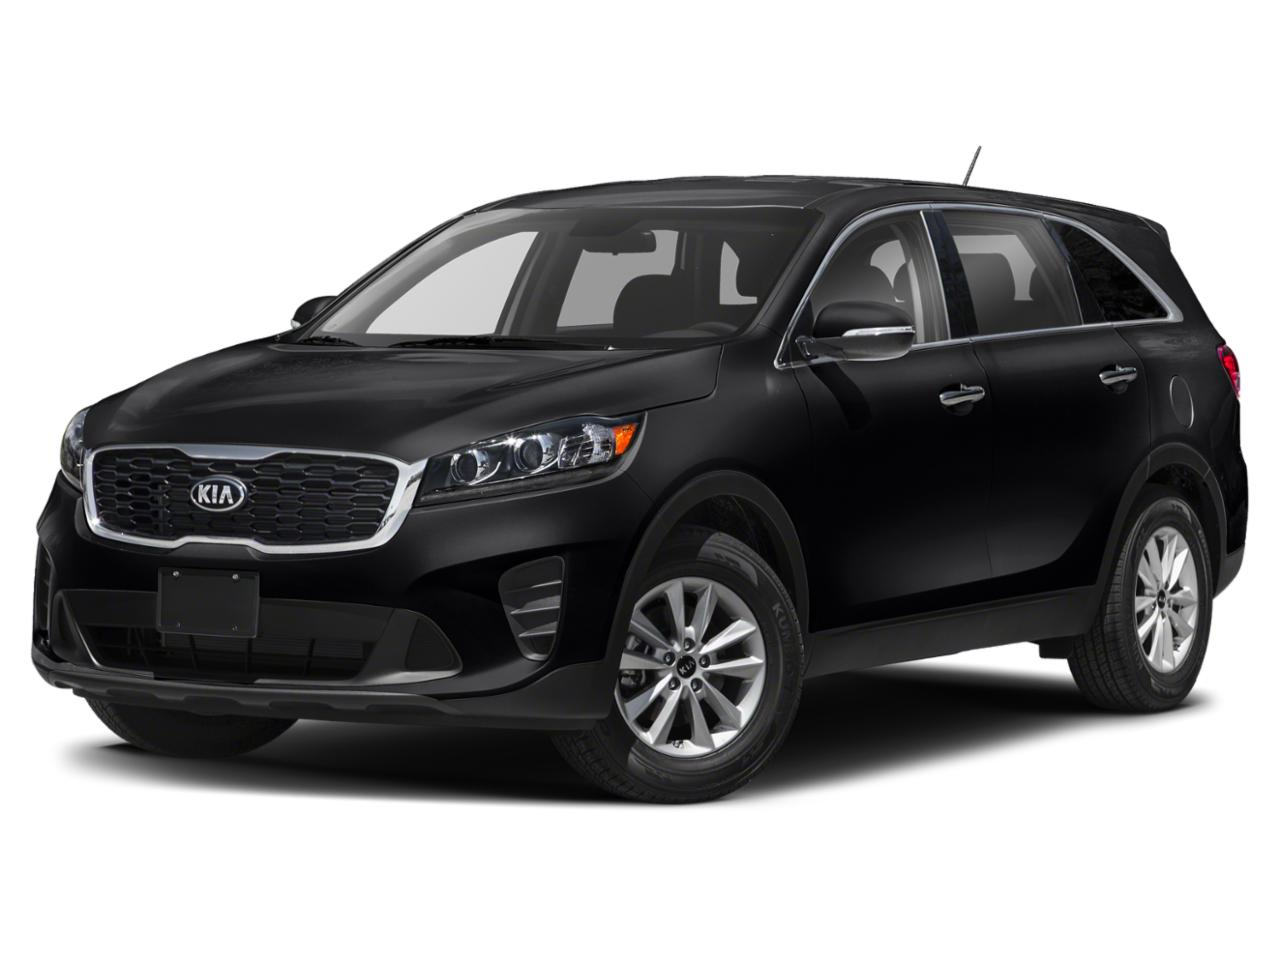 2019 Kia Sorento Vehicle Photo in Vincennes, IN 47591